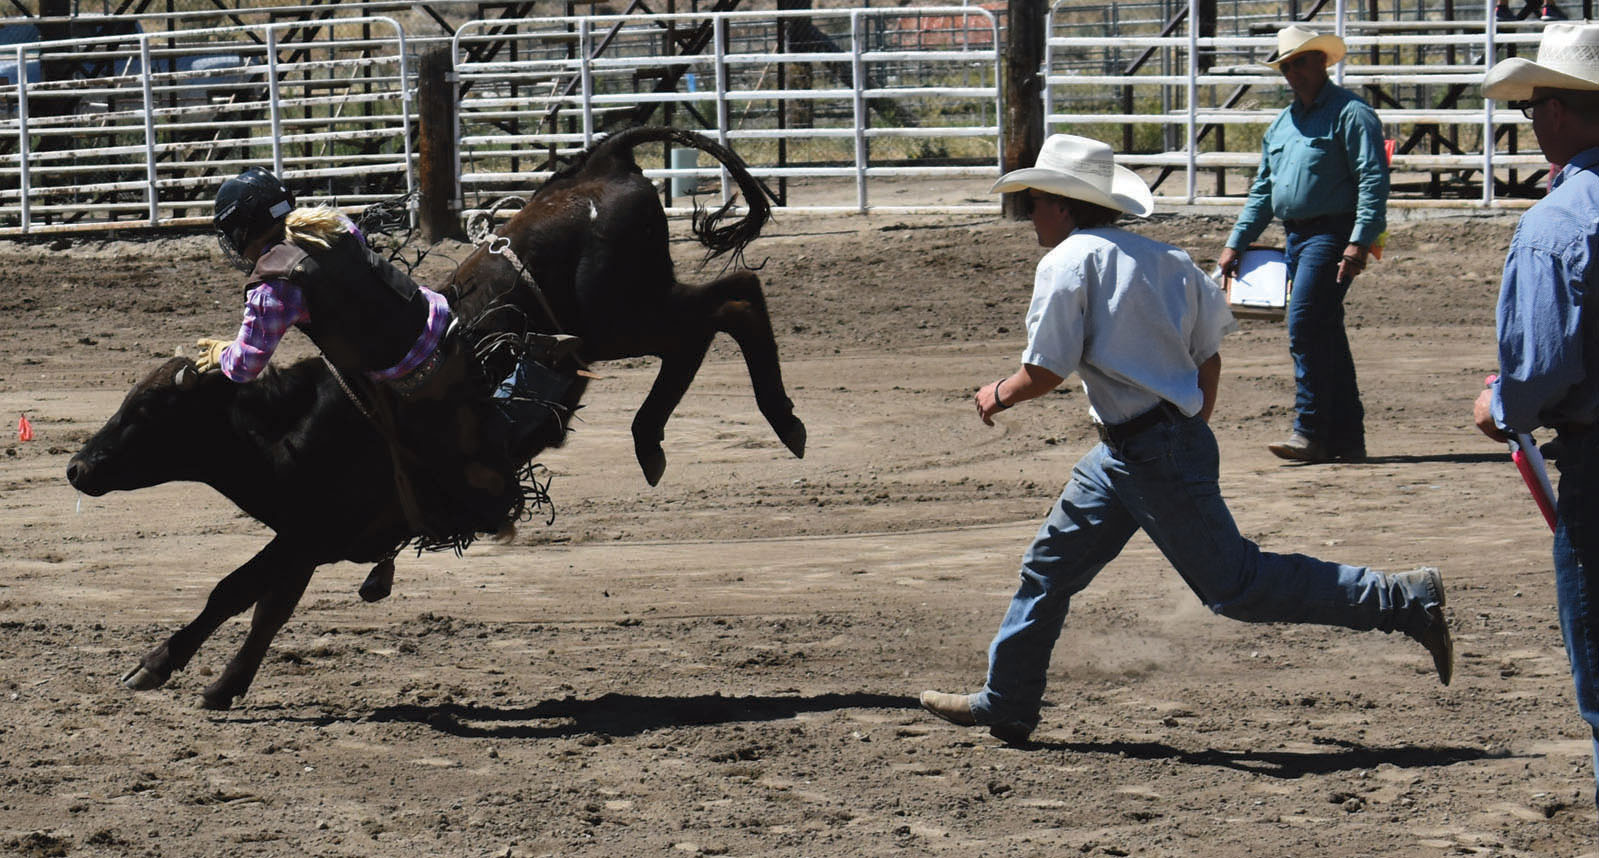 Helpers race toward a bucking steer just as it's throwing off a rider.